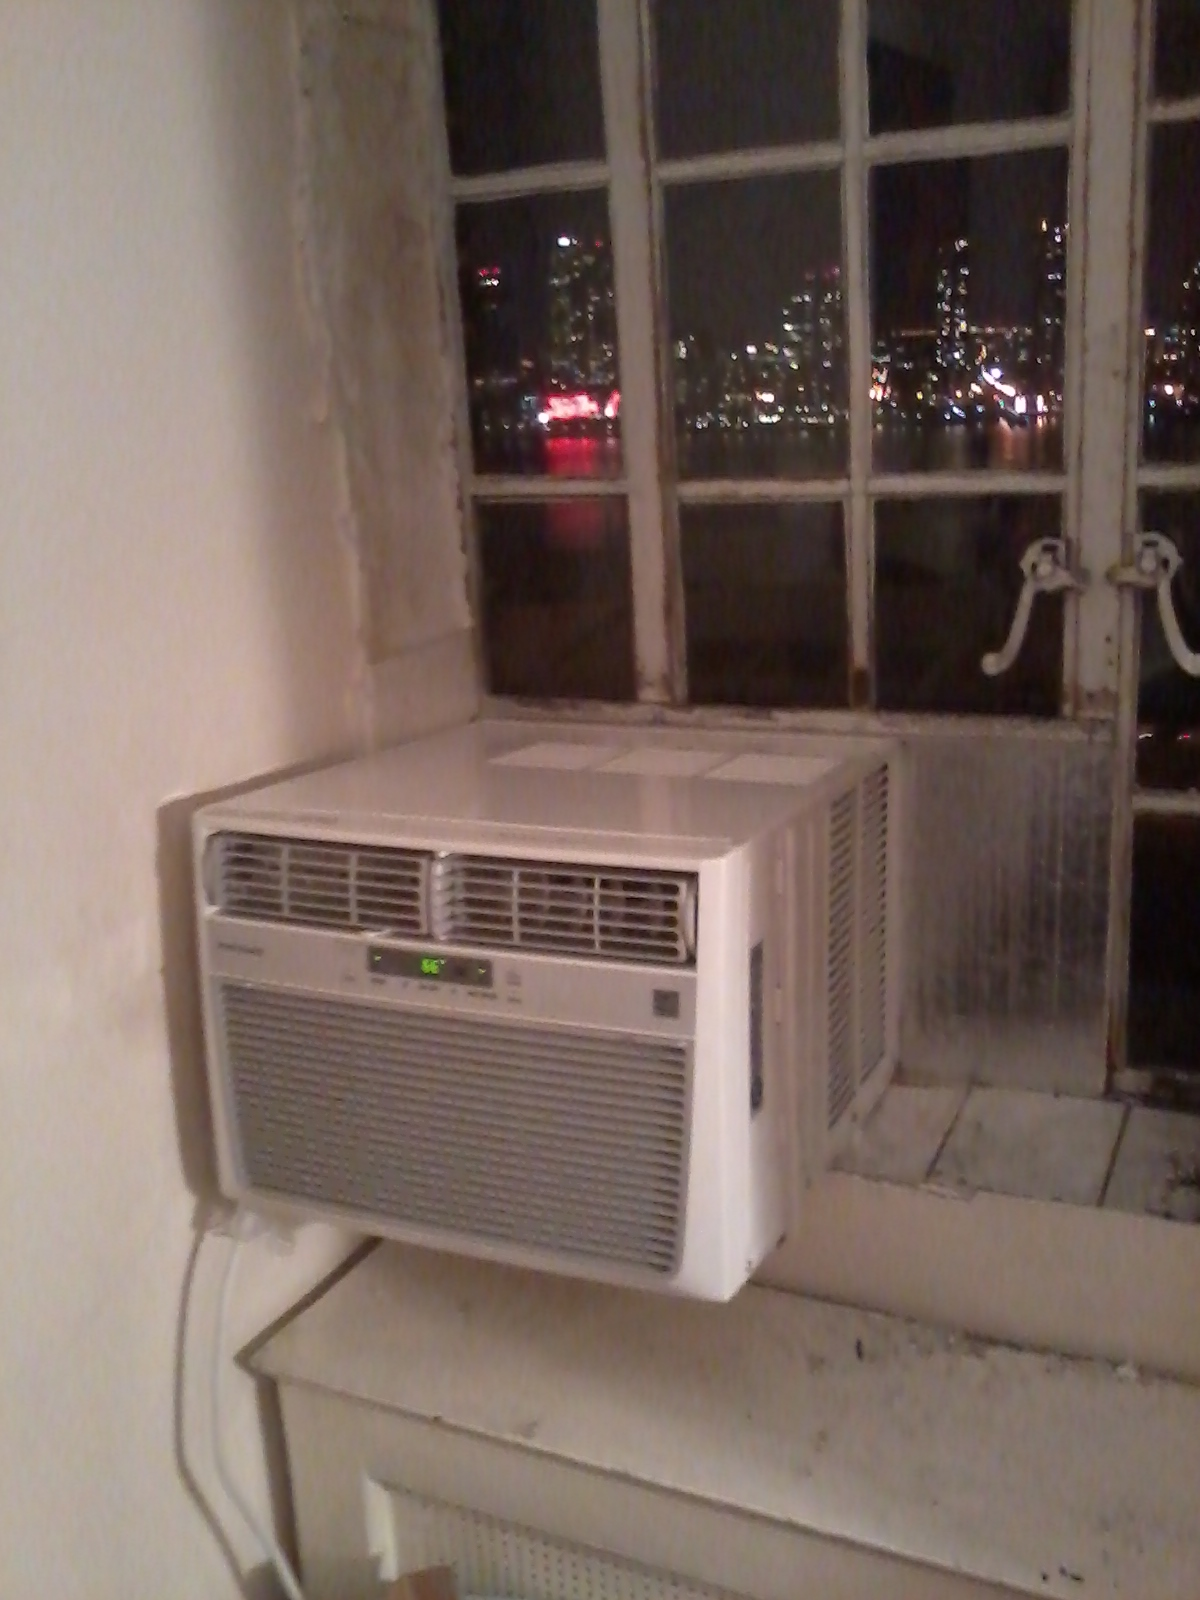 #A5263D Air Conditioner Delivery And Installation Nyc Filecloudtalk Highly Rated 9419 Apartment Air Conditioner Installation Toronto wallpapers with 1200x1600 px on helpvideos.info - Air Conditioners, Air Coolers and more